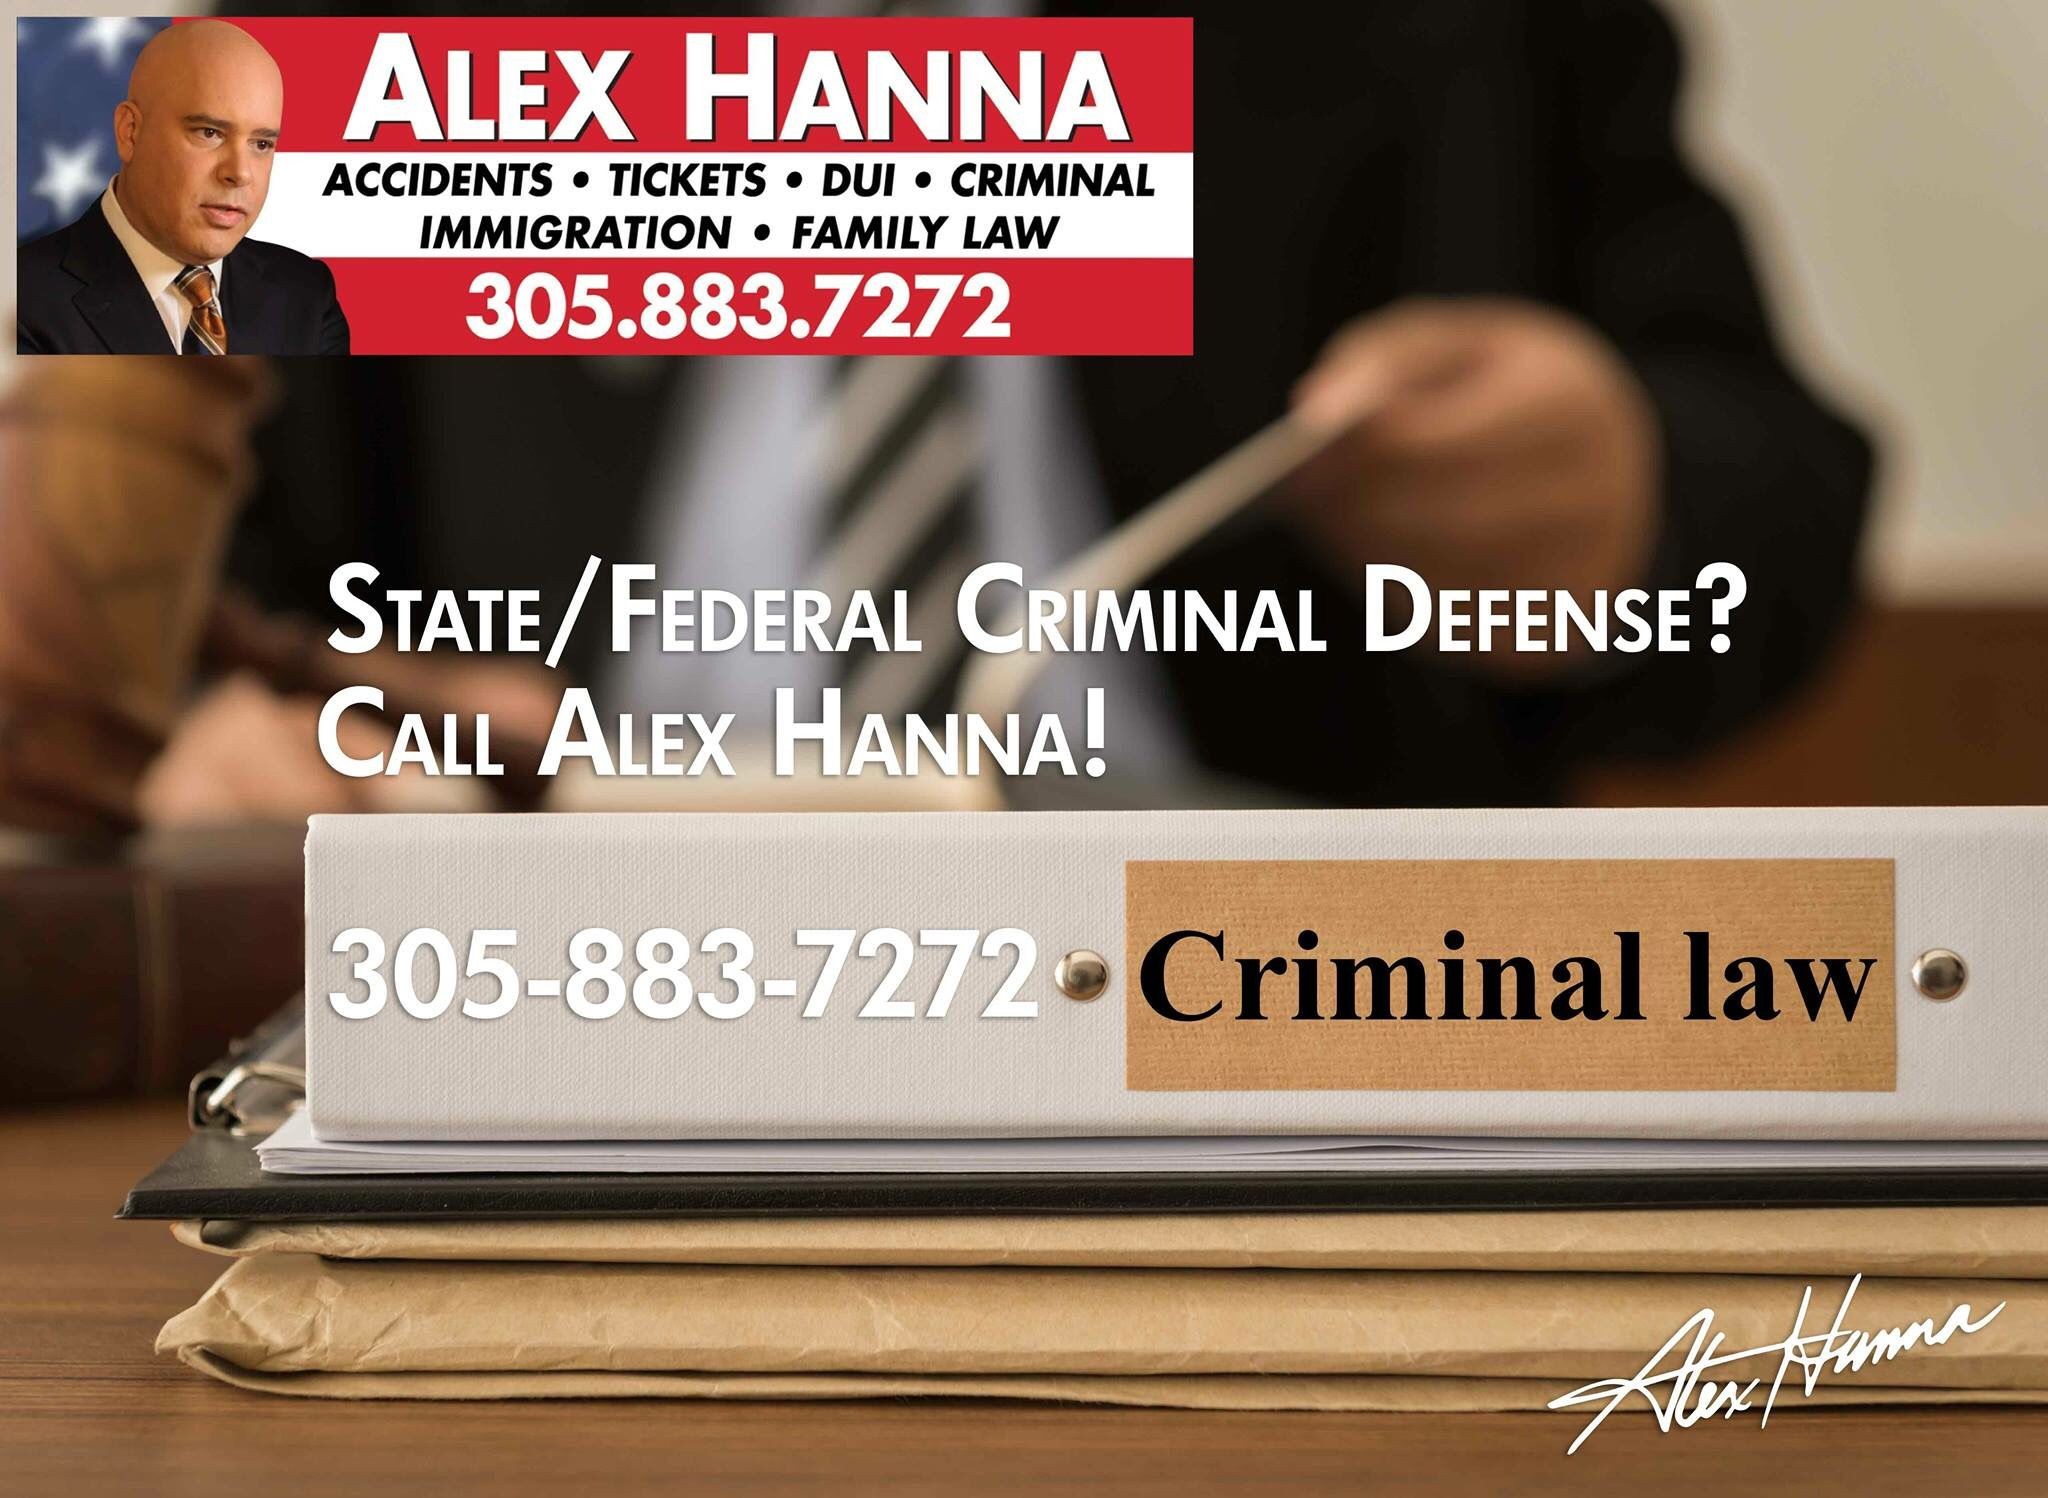 Arrested For Dui Or Any State Or Federal Crime Need An Attorney Call Me Now For A Free Consultation 305 883 7272 Family Law Criminal Defense Criminal Law